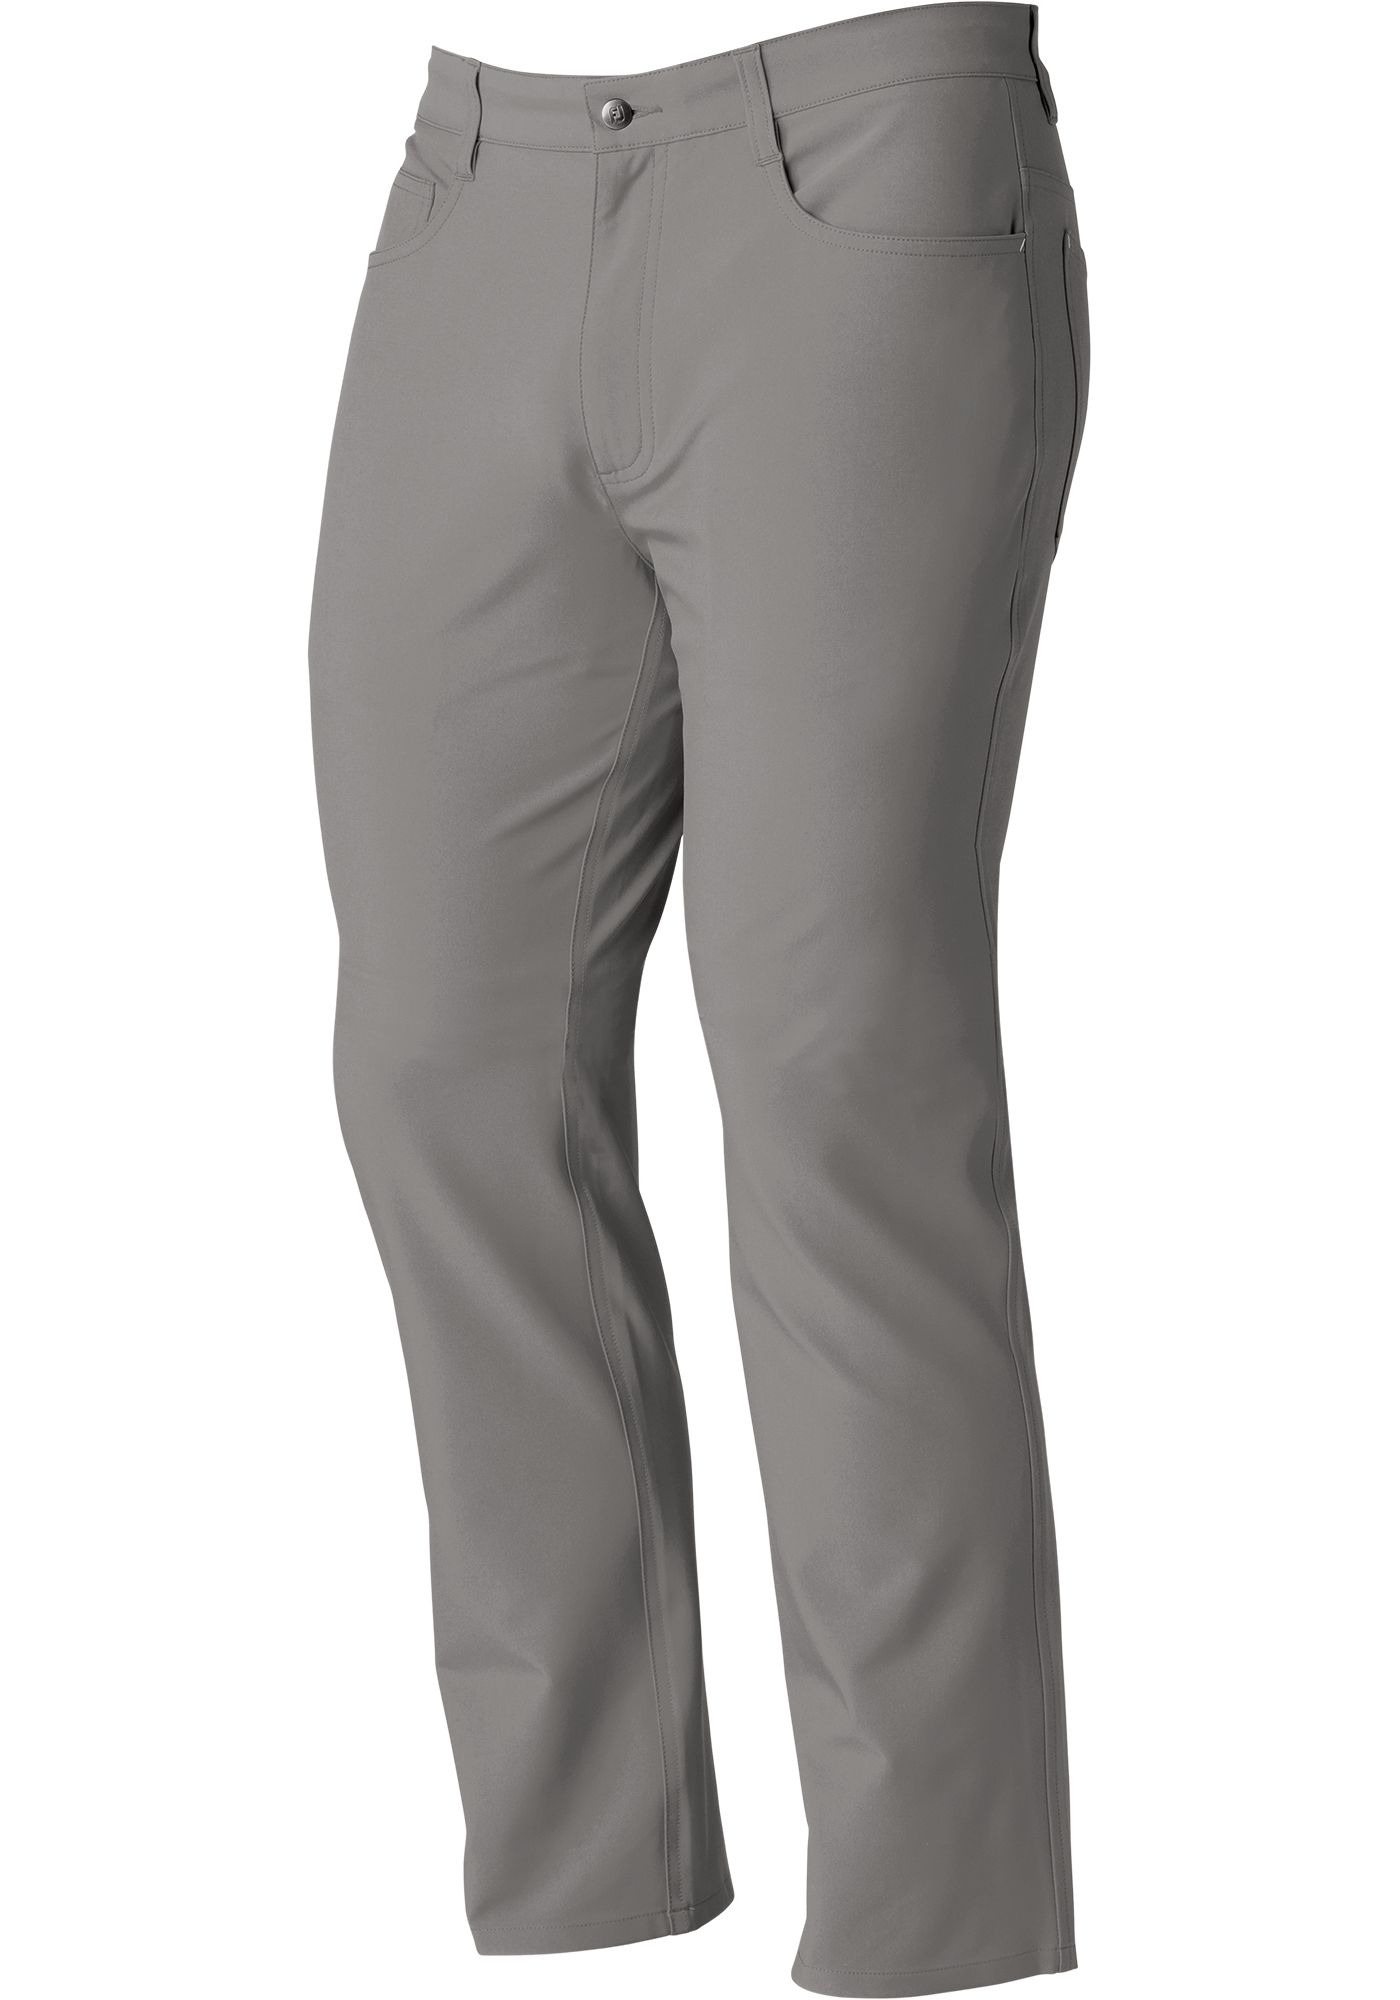 FootJoy Men's Performance Athletic Fit 5 Pocket Golf Pants